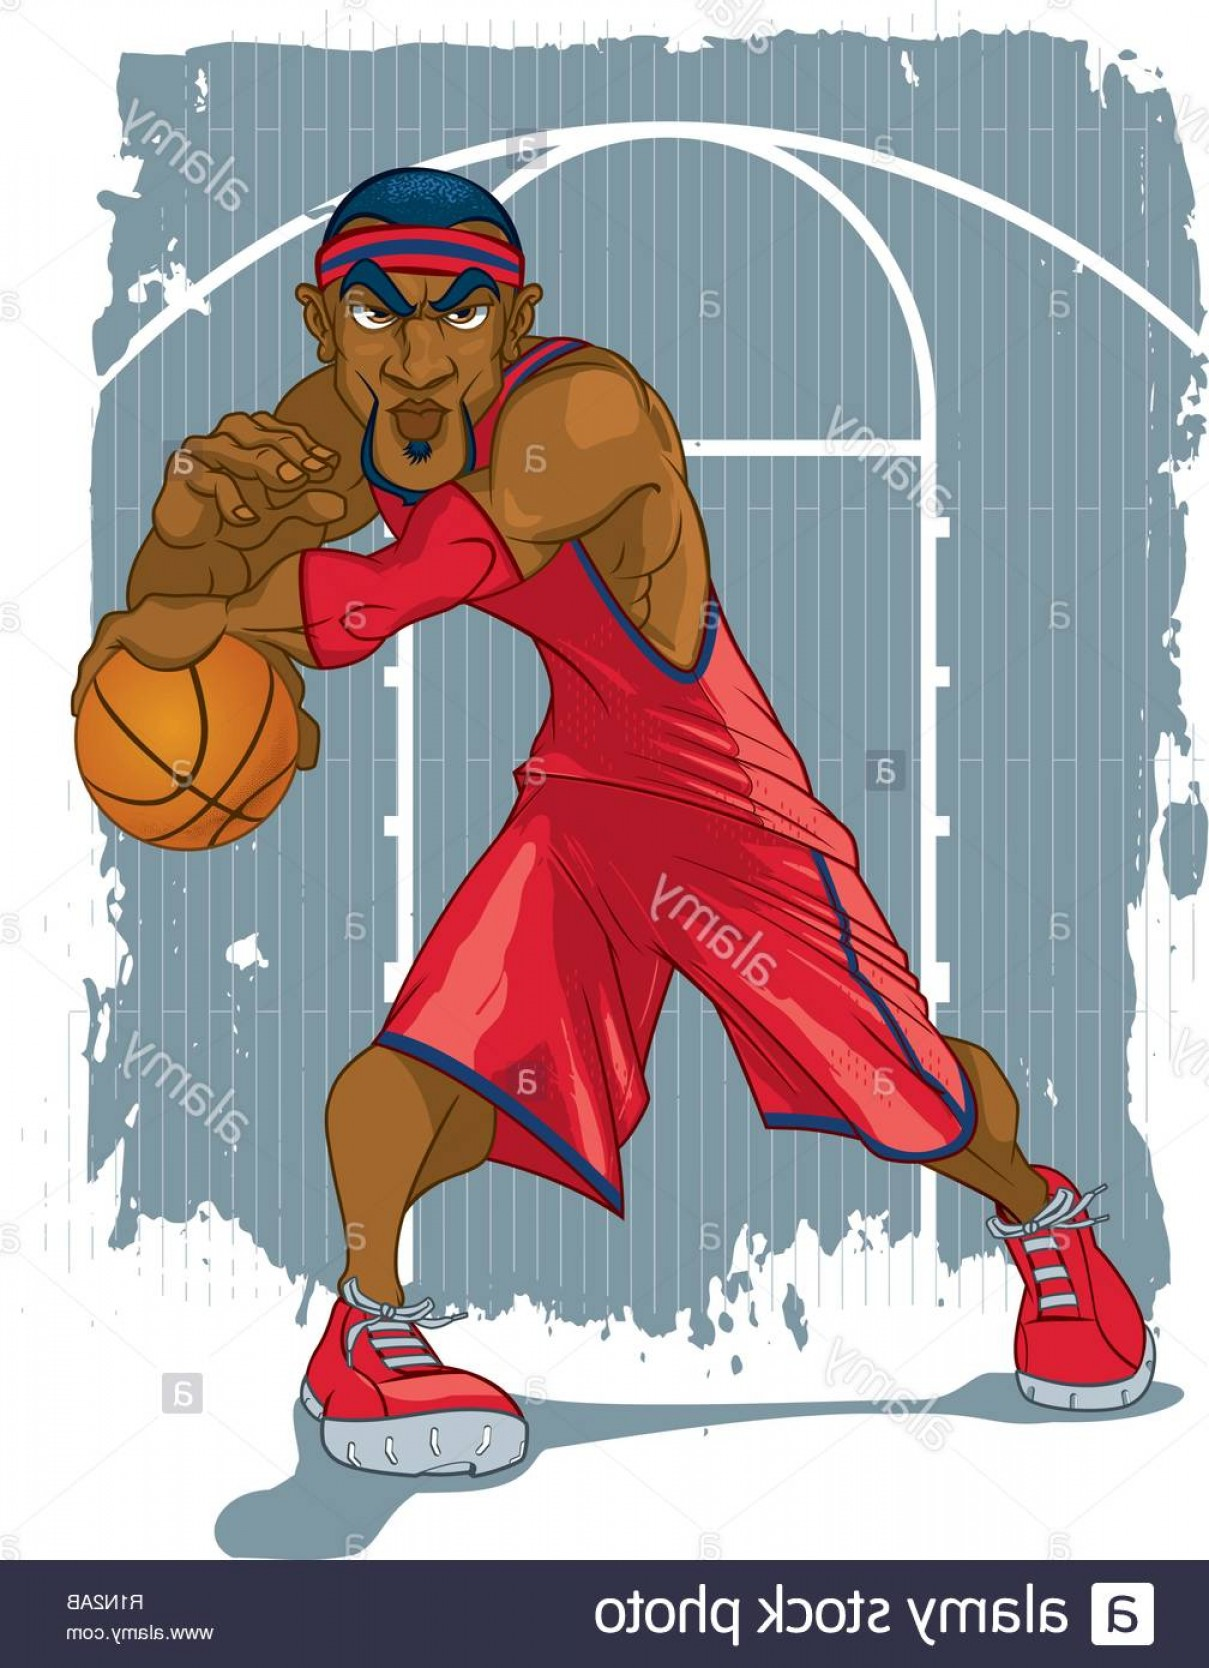 NBA Jersey Vector Art: A Basketball Player In A Red Jersey Striking A Dynamic Pose Against A Grungy Basketball Court Backdrop Image